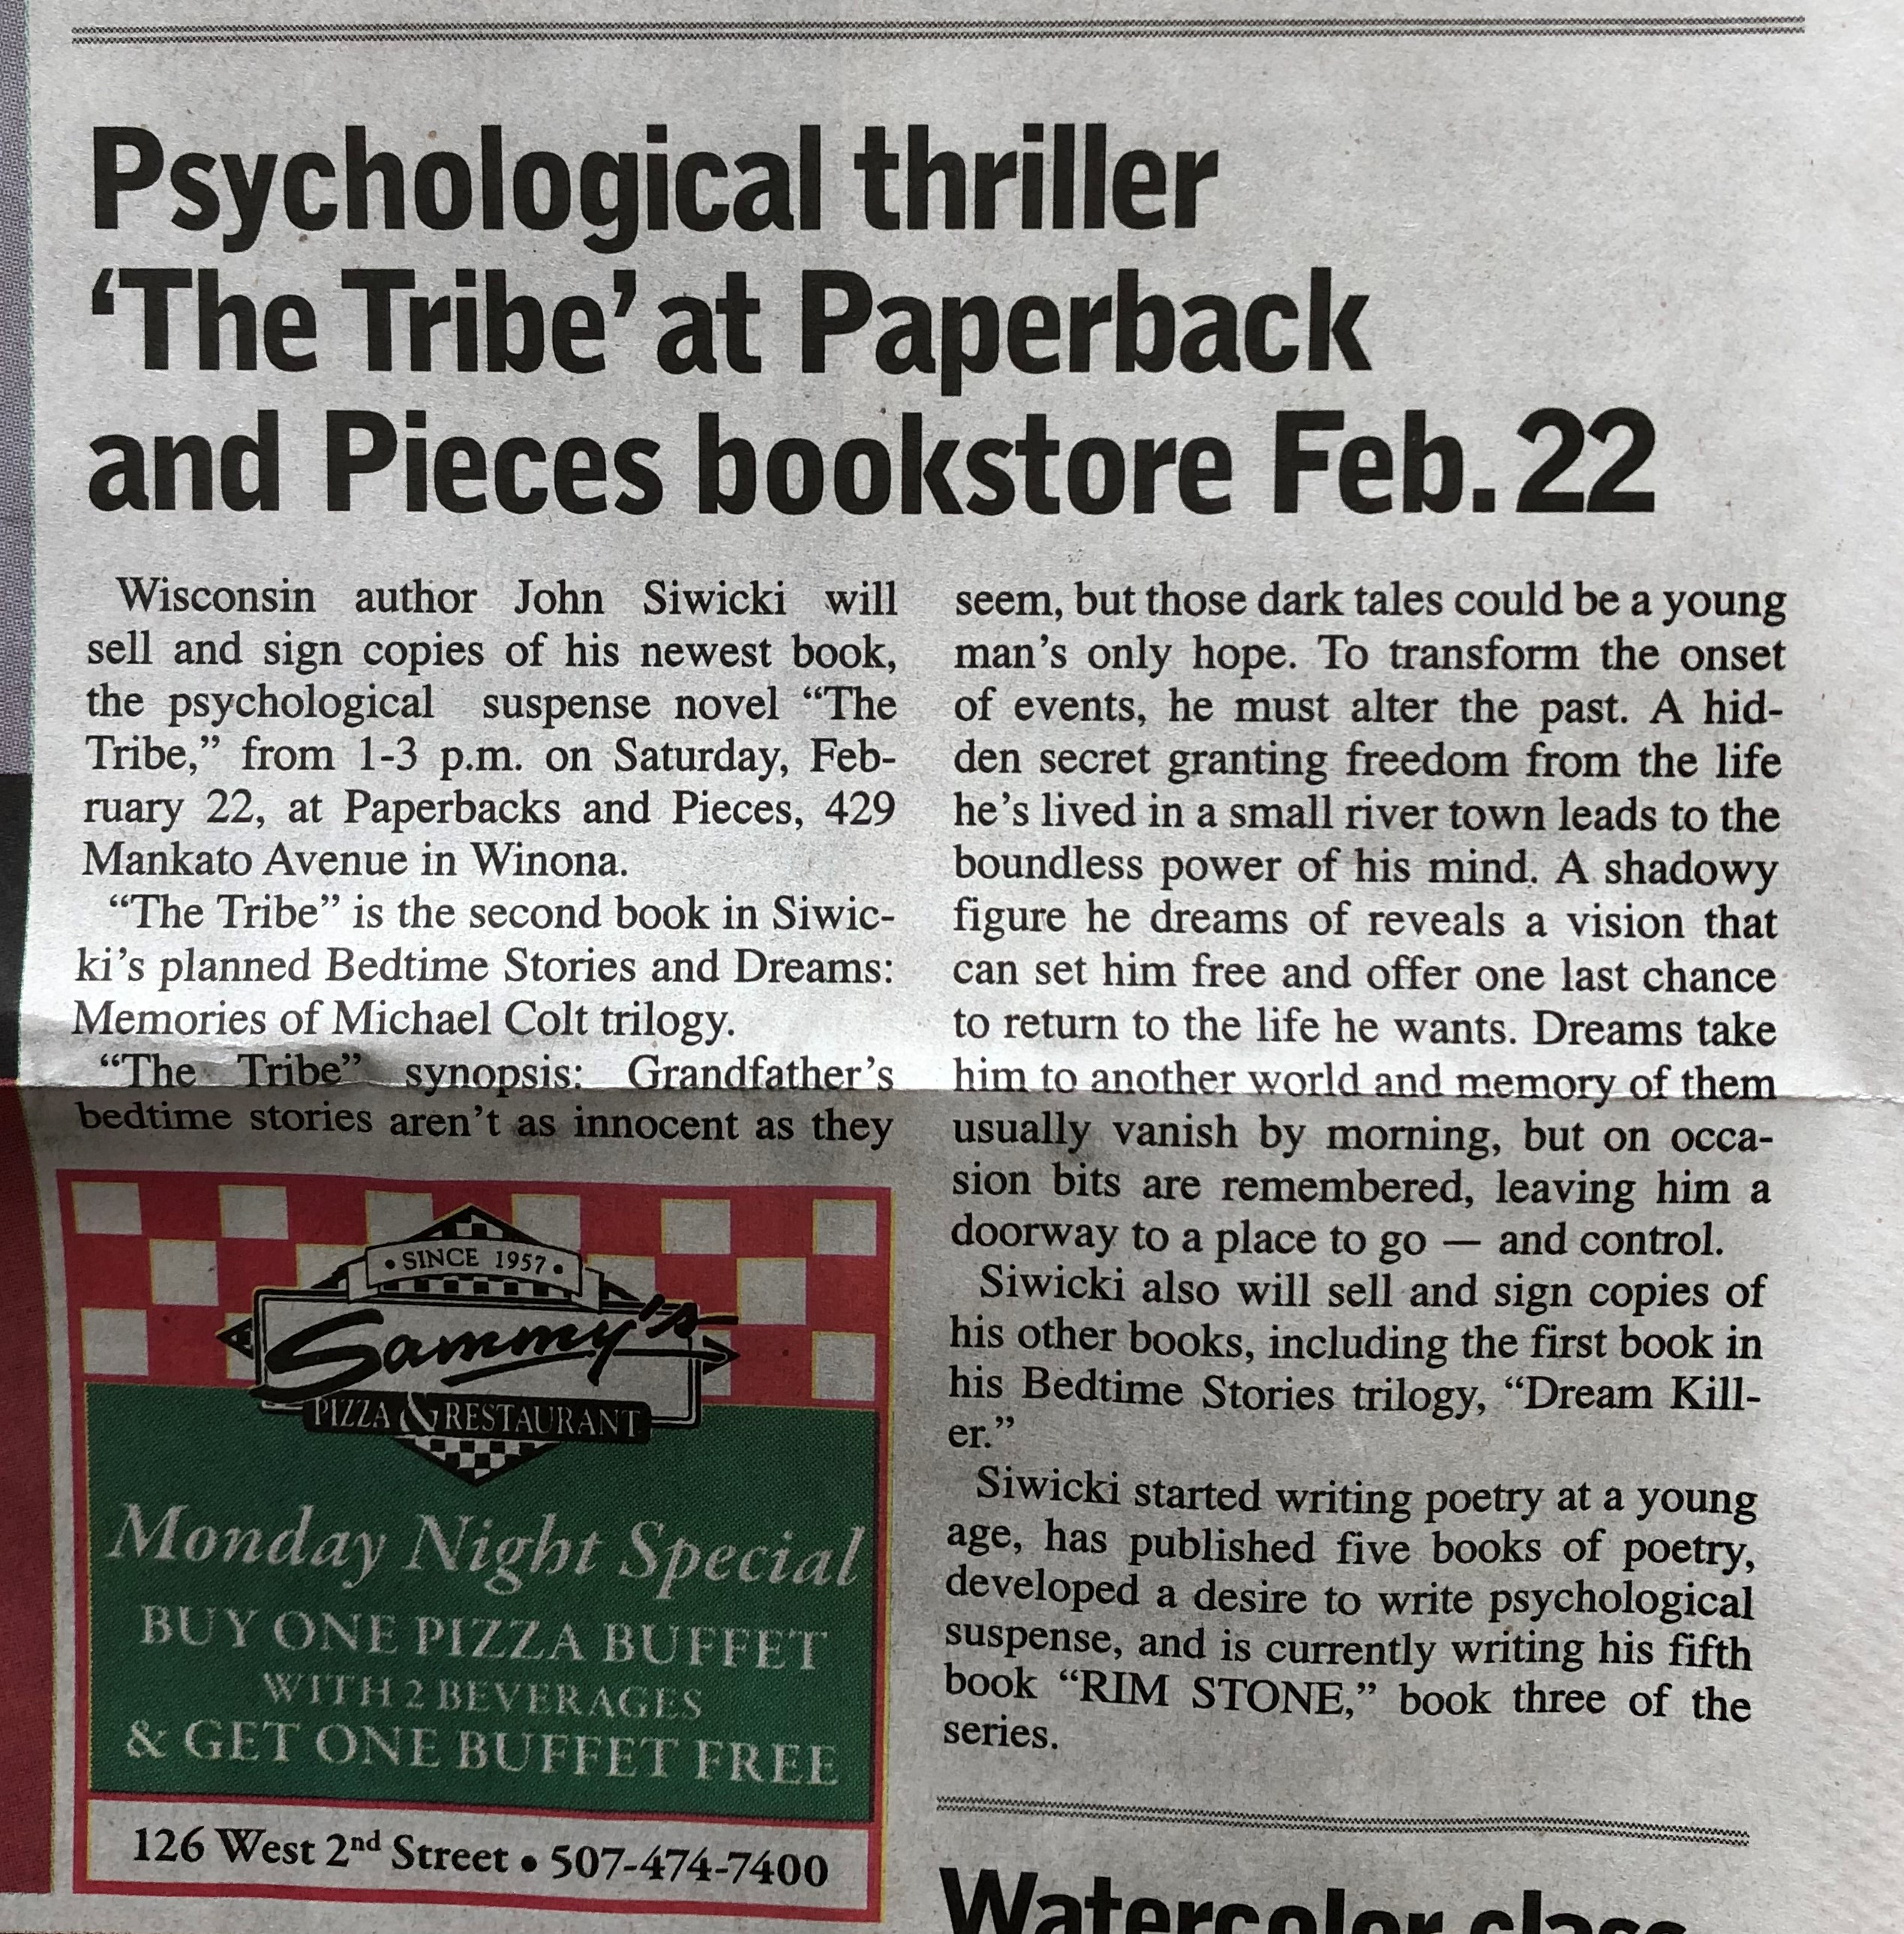 booksignnewsarticle